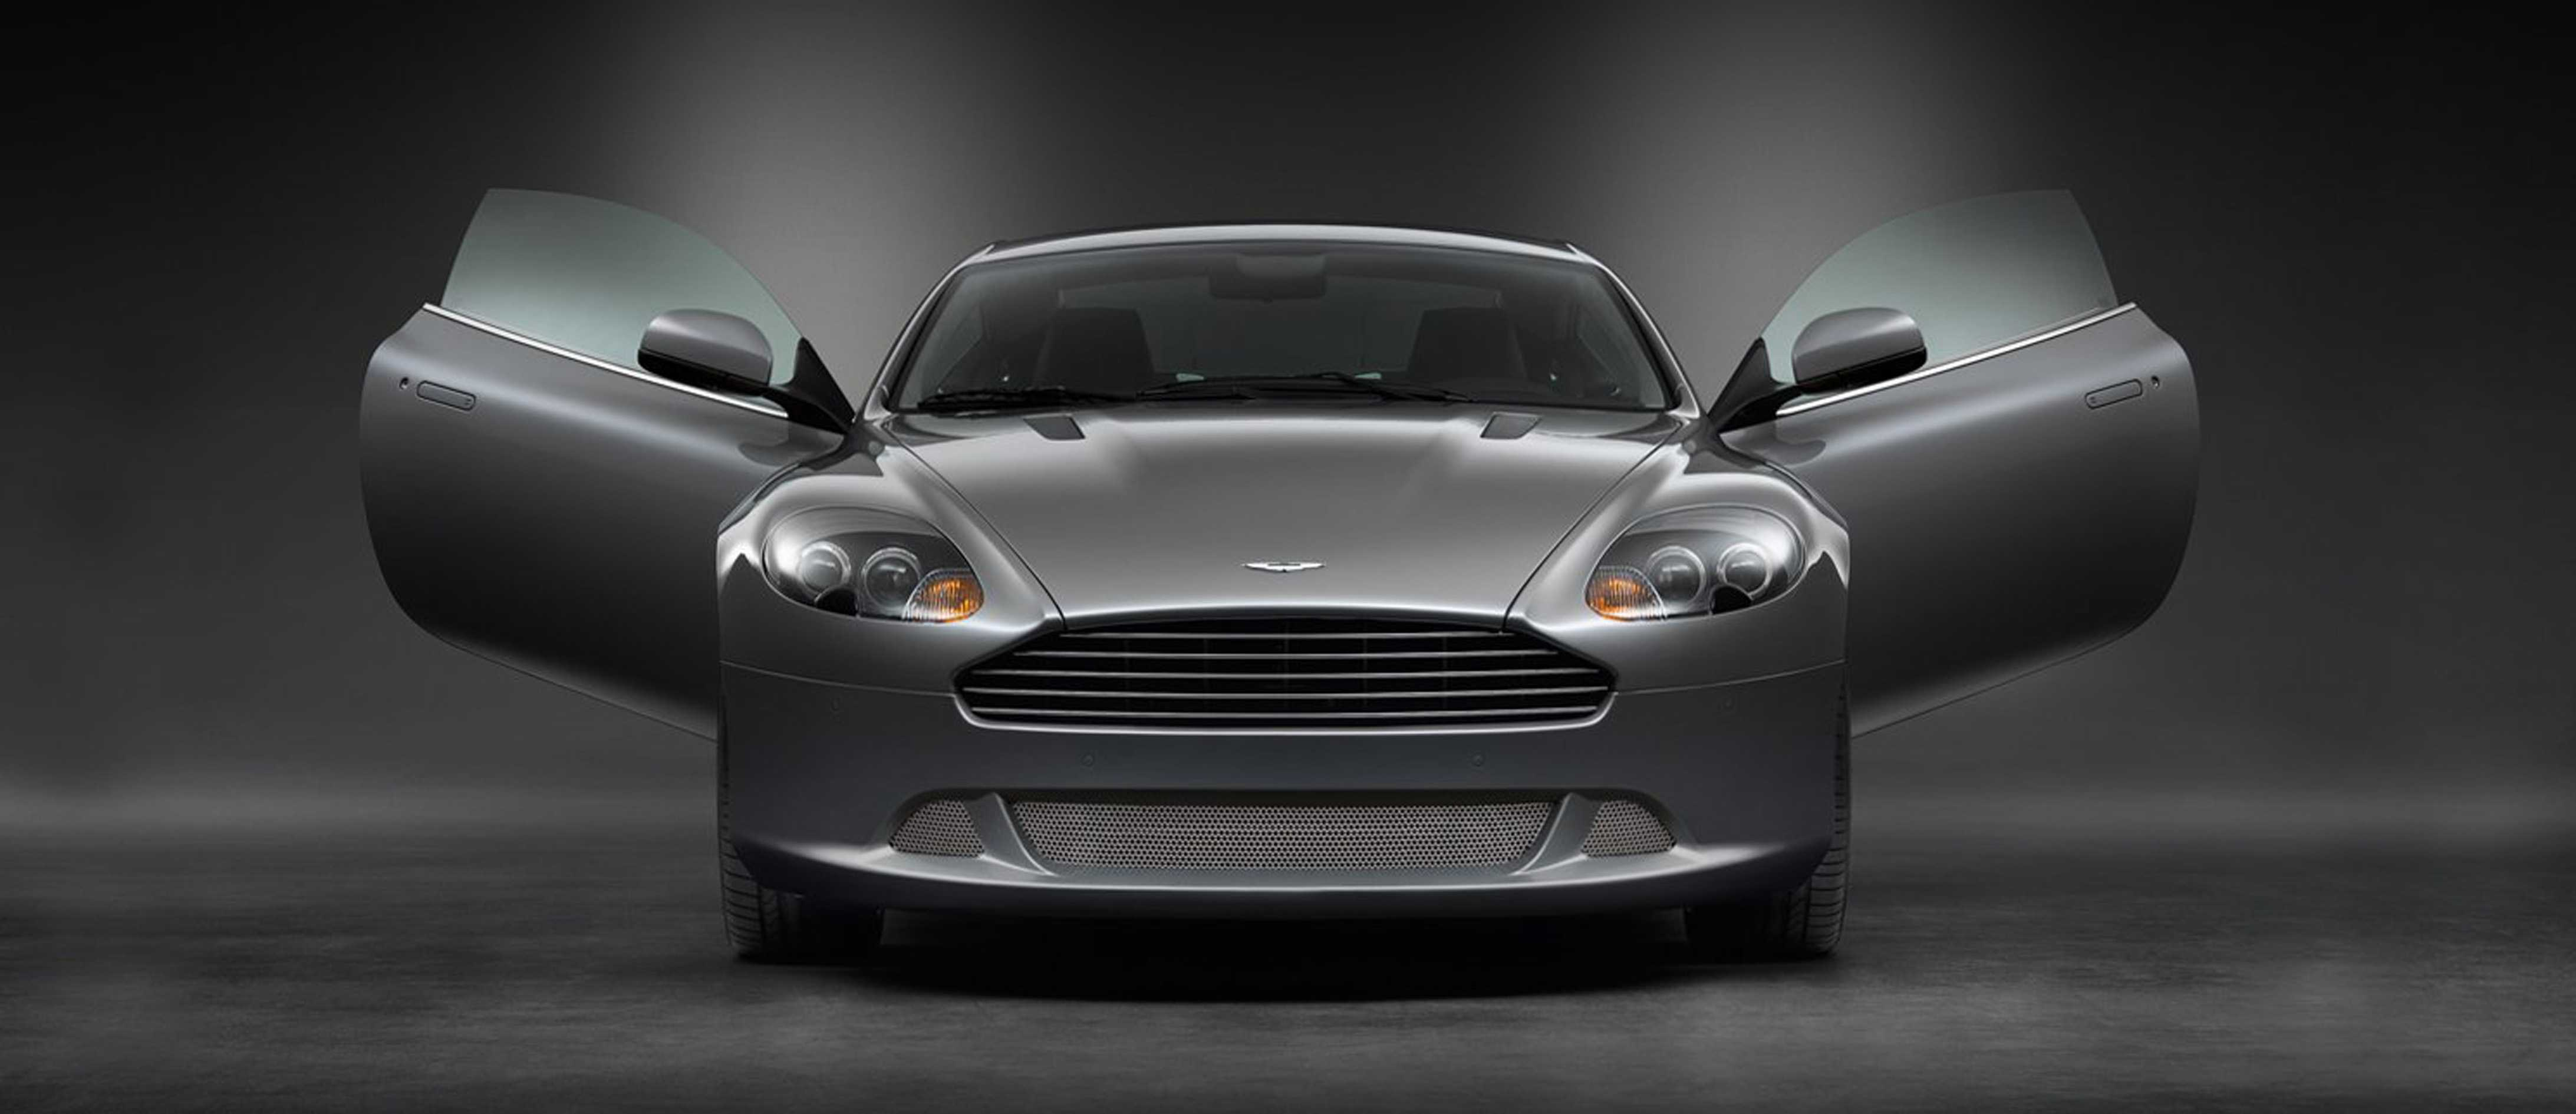 Aston Martin DB9 from front